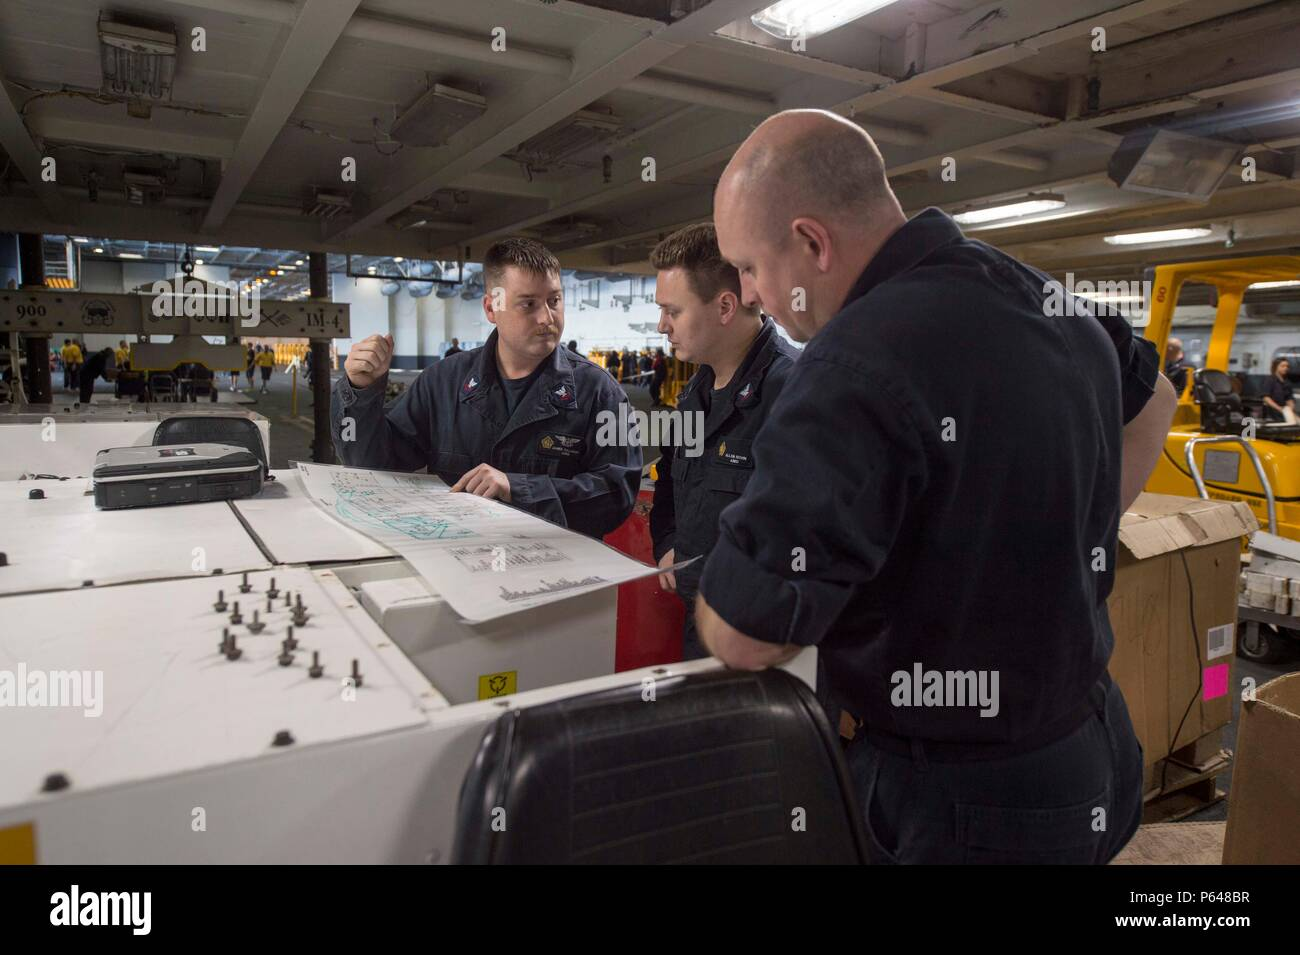 160420-N-BH414-005    ATLANTIC OCEAN (April 20, 2016) - Sailors study schematics in the hangar bay of the aircraft carrier USS Dwight D. Eisenhower (CVN 69), the flagship of the Eisenhower Carrier Strike Group. Ike is underway preparing for an upcoming scheduled deployment. (U.S. Navy photo by Mass Communication Specialist Seaman Casey S. Trietsch/Released) - Stock Image